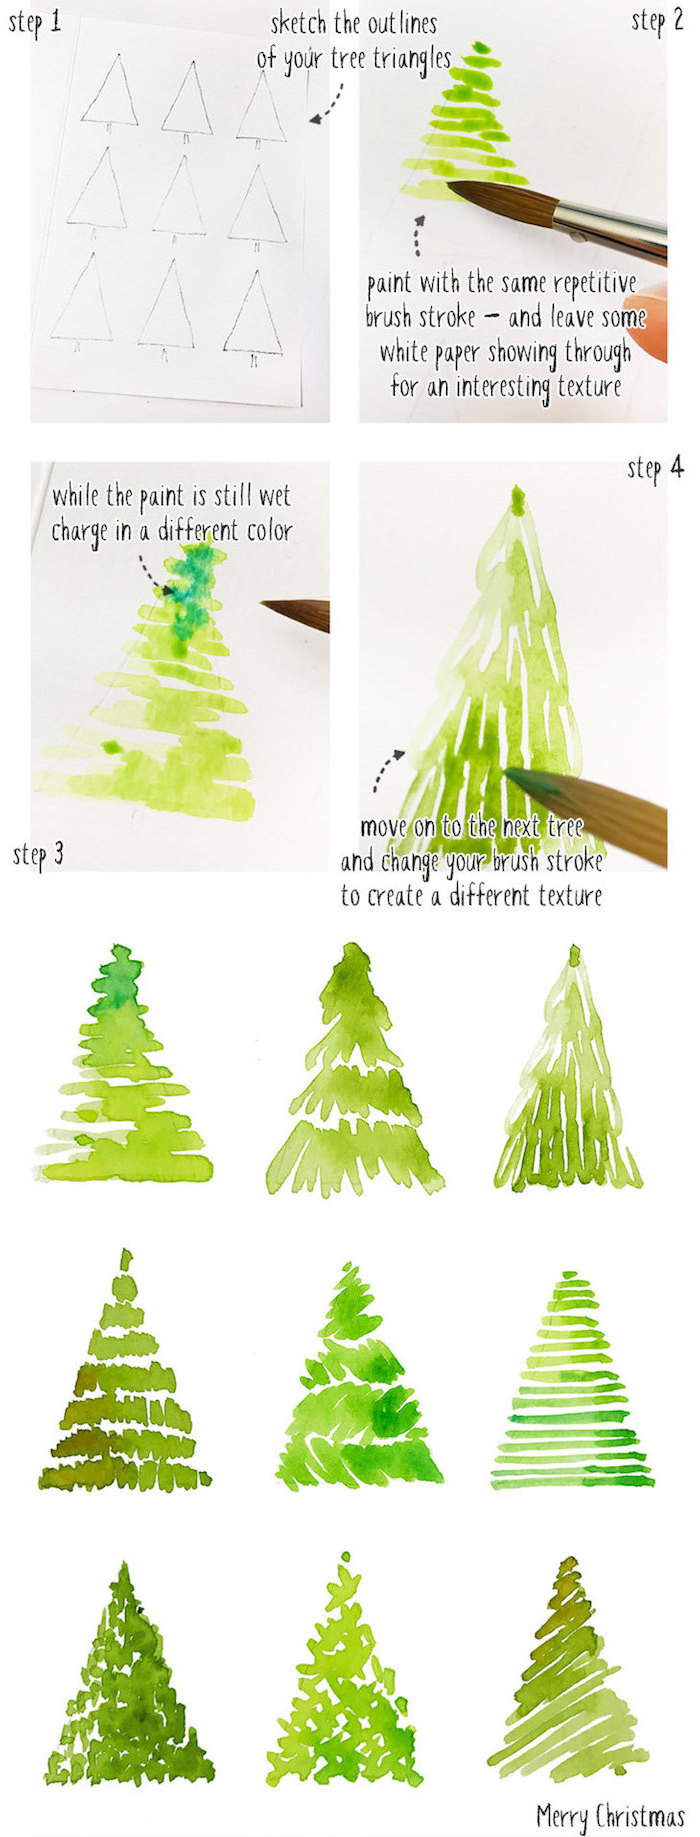 step by step diy tutorial, how to draw a christmas tree, different trees, drawn with watercolor, watercolor ideas